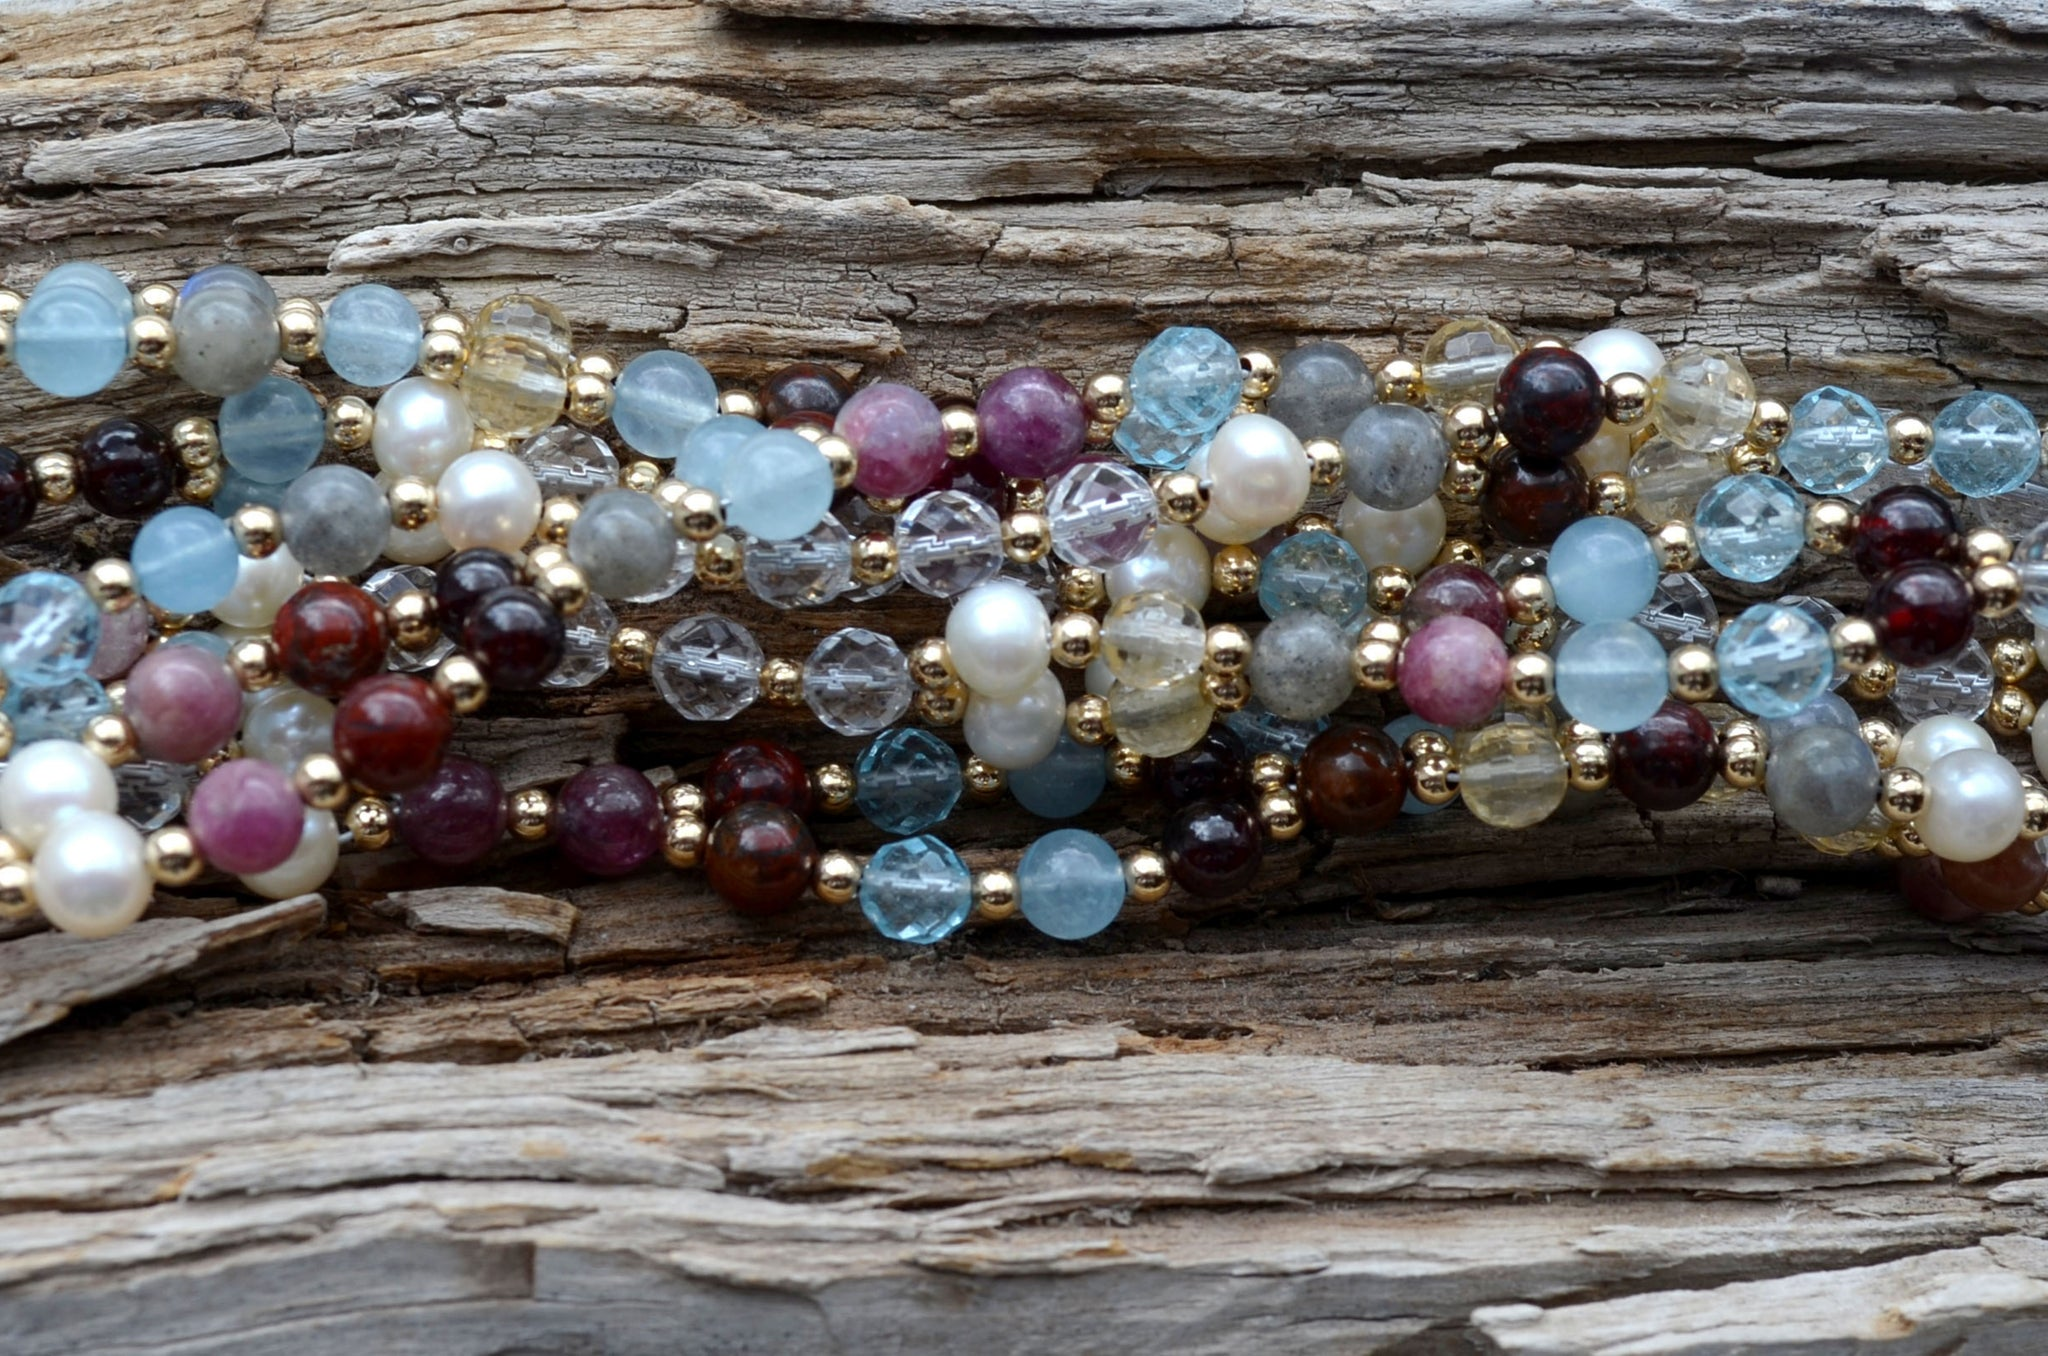 6mm Navratna: cool tones - Limited Edition Aquamarine, Red Tourmaline, Blue Topaz and more ... plus Gold Filled